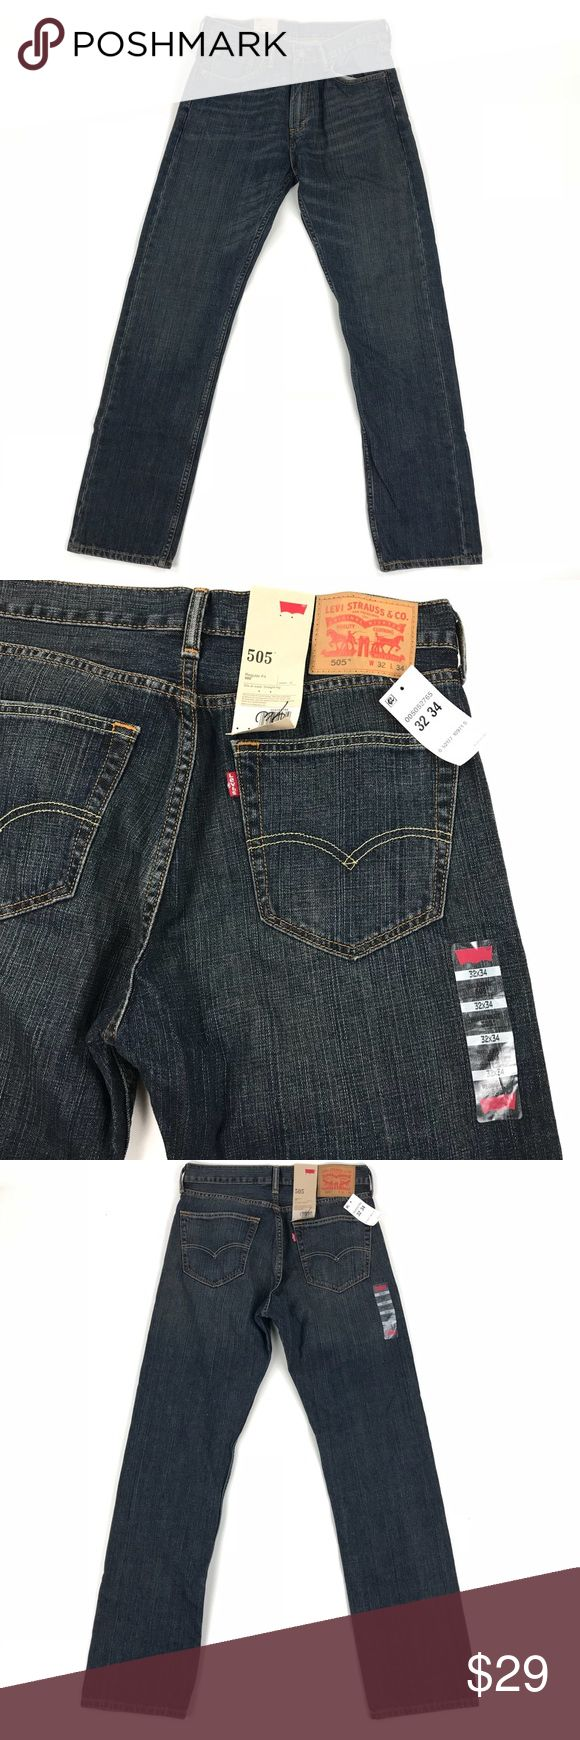 LEVIS 505 Jeans 32 x 34 Mens Blue Regular Fit NWT Nice jeans in brand new unworn condition. Levi's Jeans Relaxed